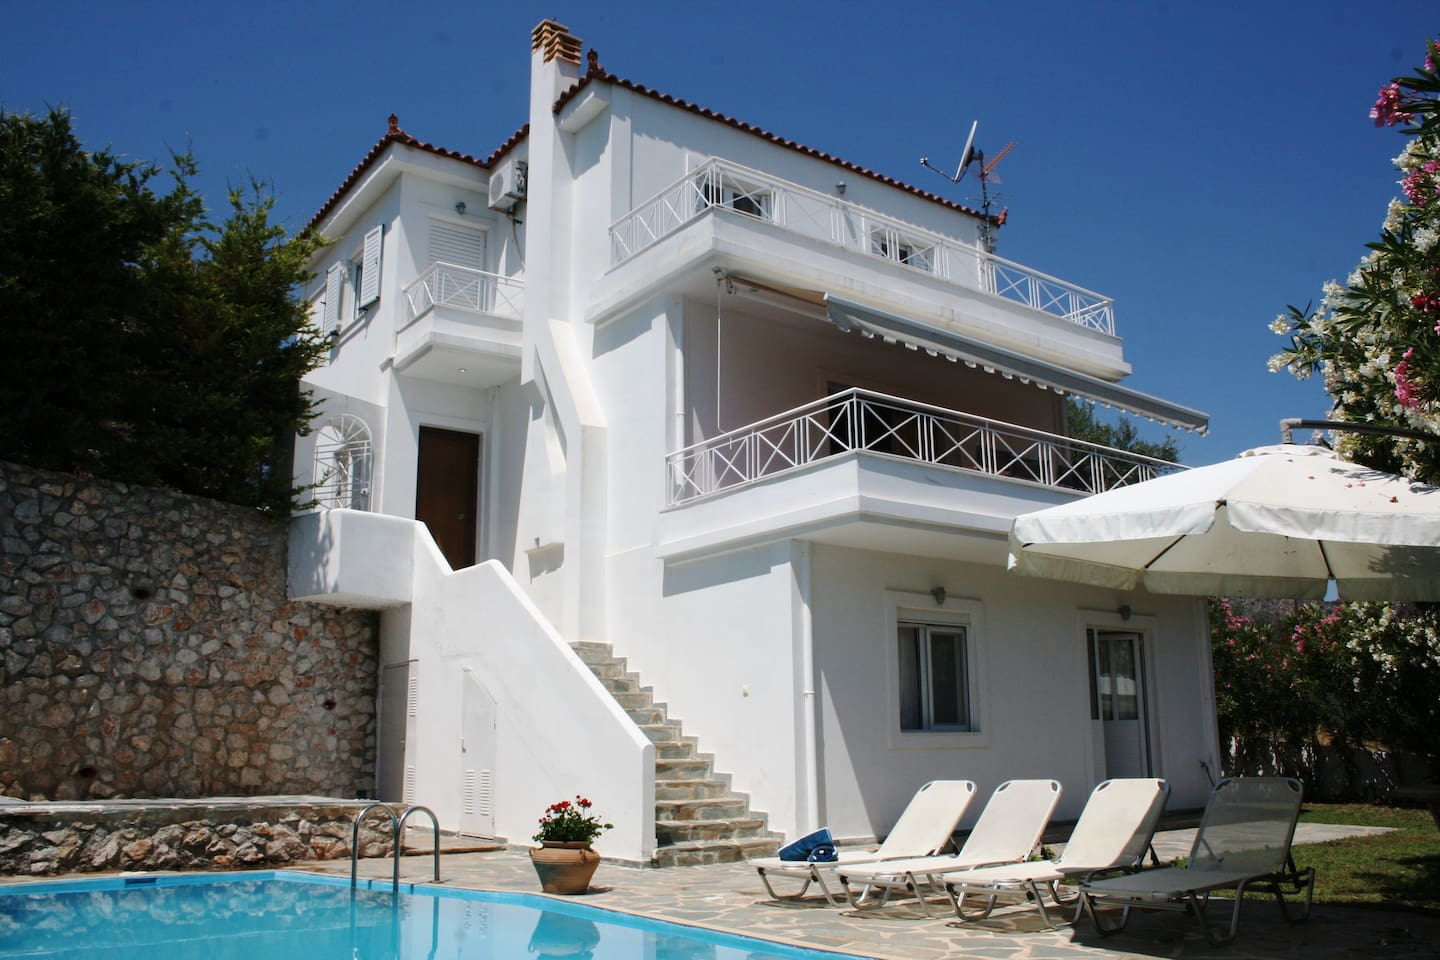 Villa Amelia viewed from the Pool Terrace